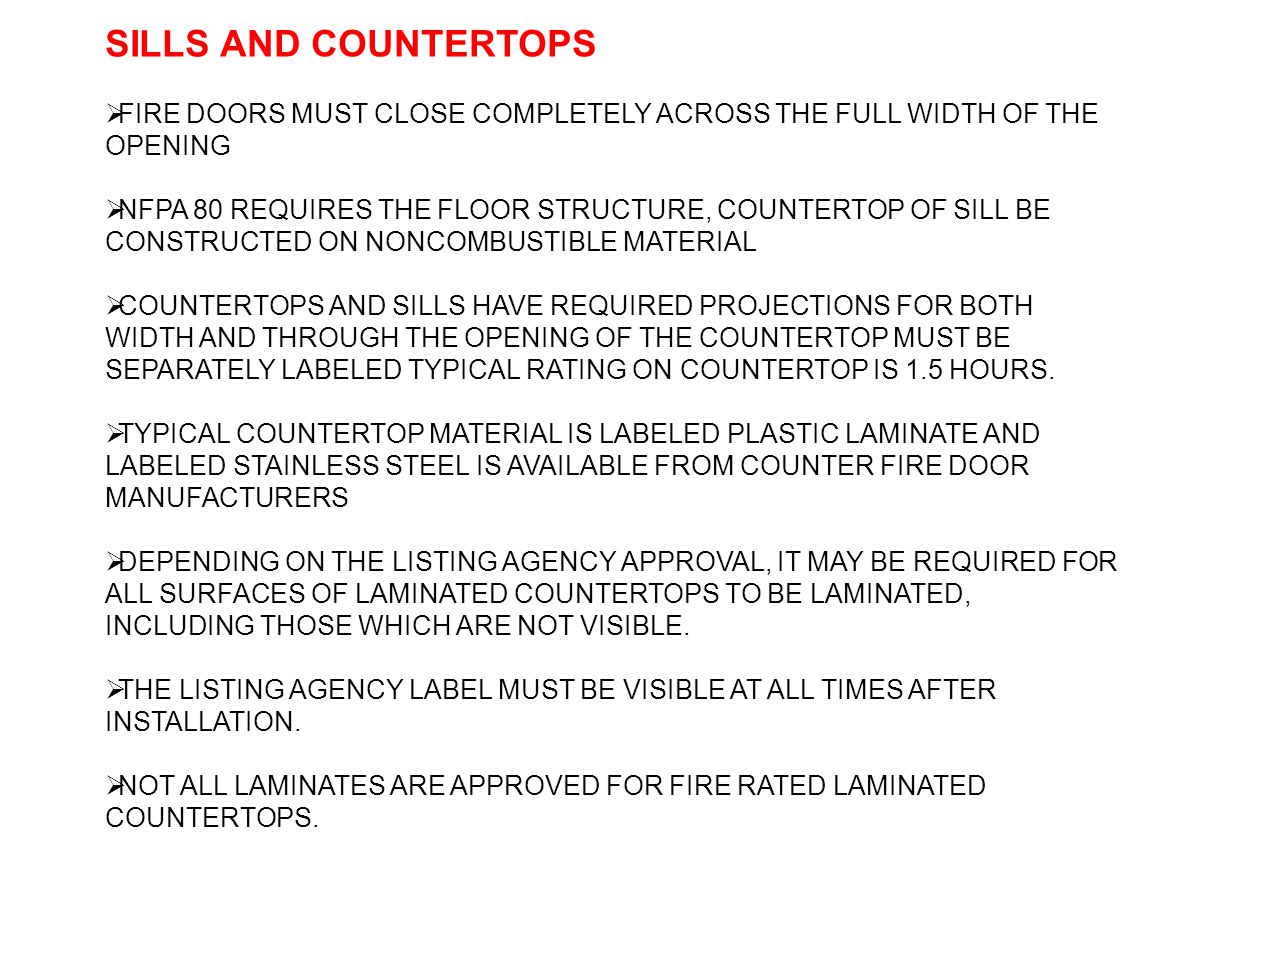 SILLS AND COUNTERTOPS FIRE DOORS MUST CLOSE COMPLETELY ACROSS THE FULL WIDTH OF THE OPENING NFPA 80 REQUIRES THE FLOOR STRUCTURE, COUNTERTOP OF SILL B